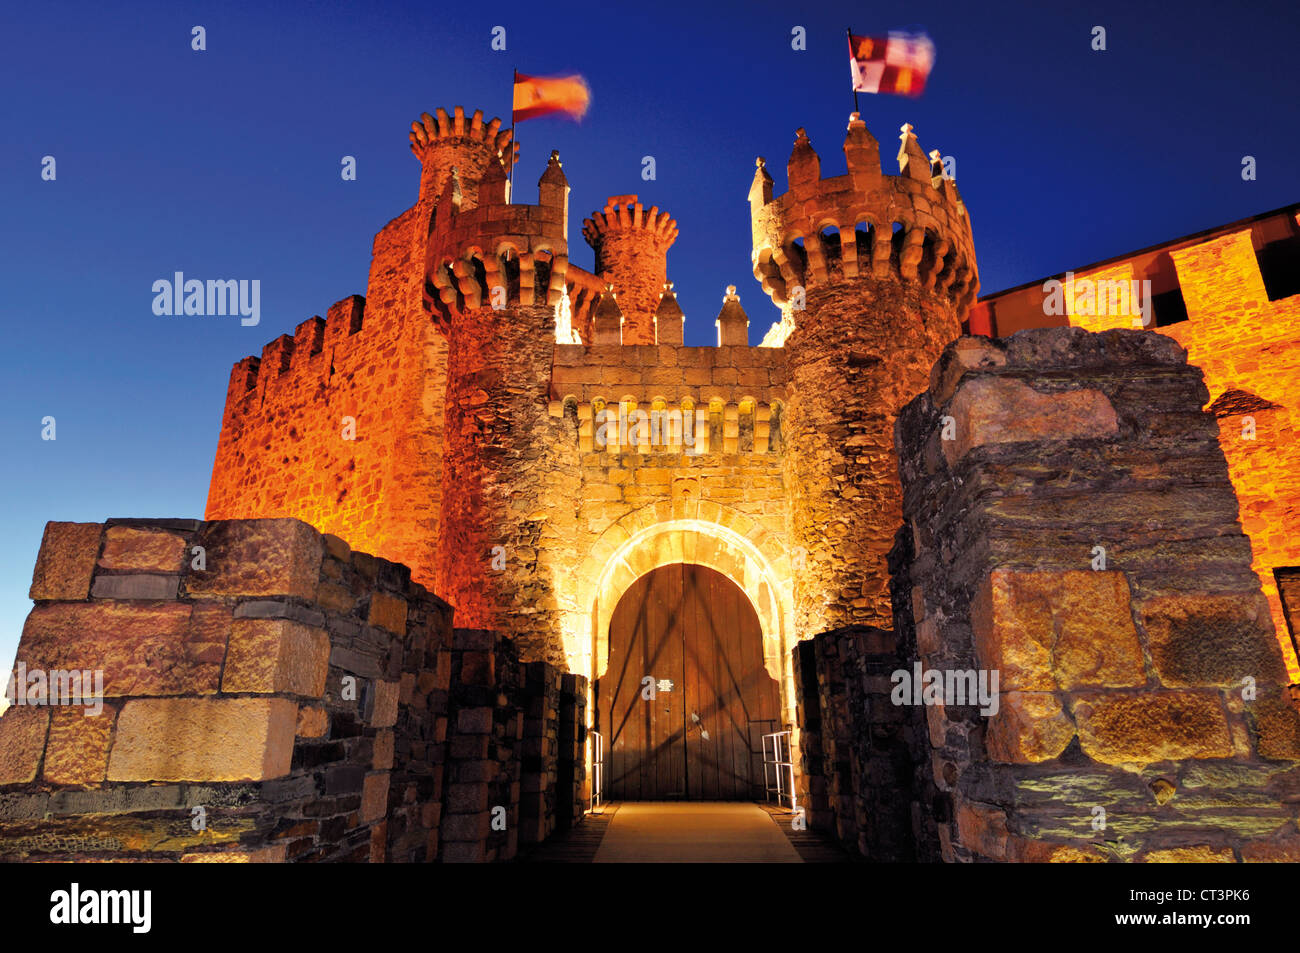 Spain, St. James Way: Entrance of the Order of Temple castle  in Ponferrada - Stock Image